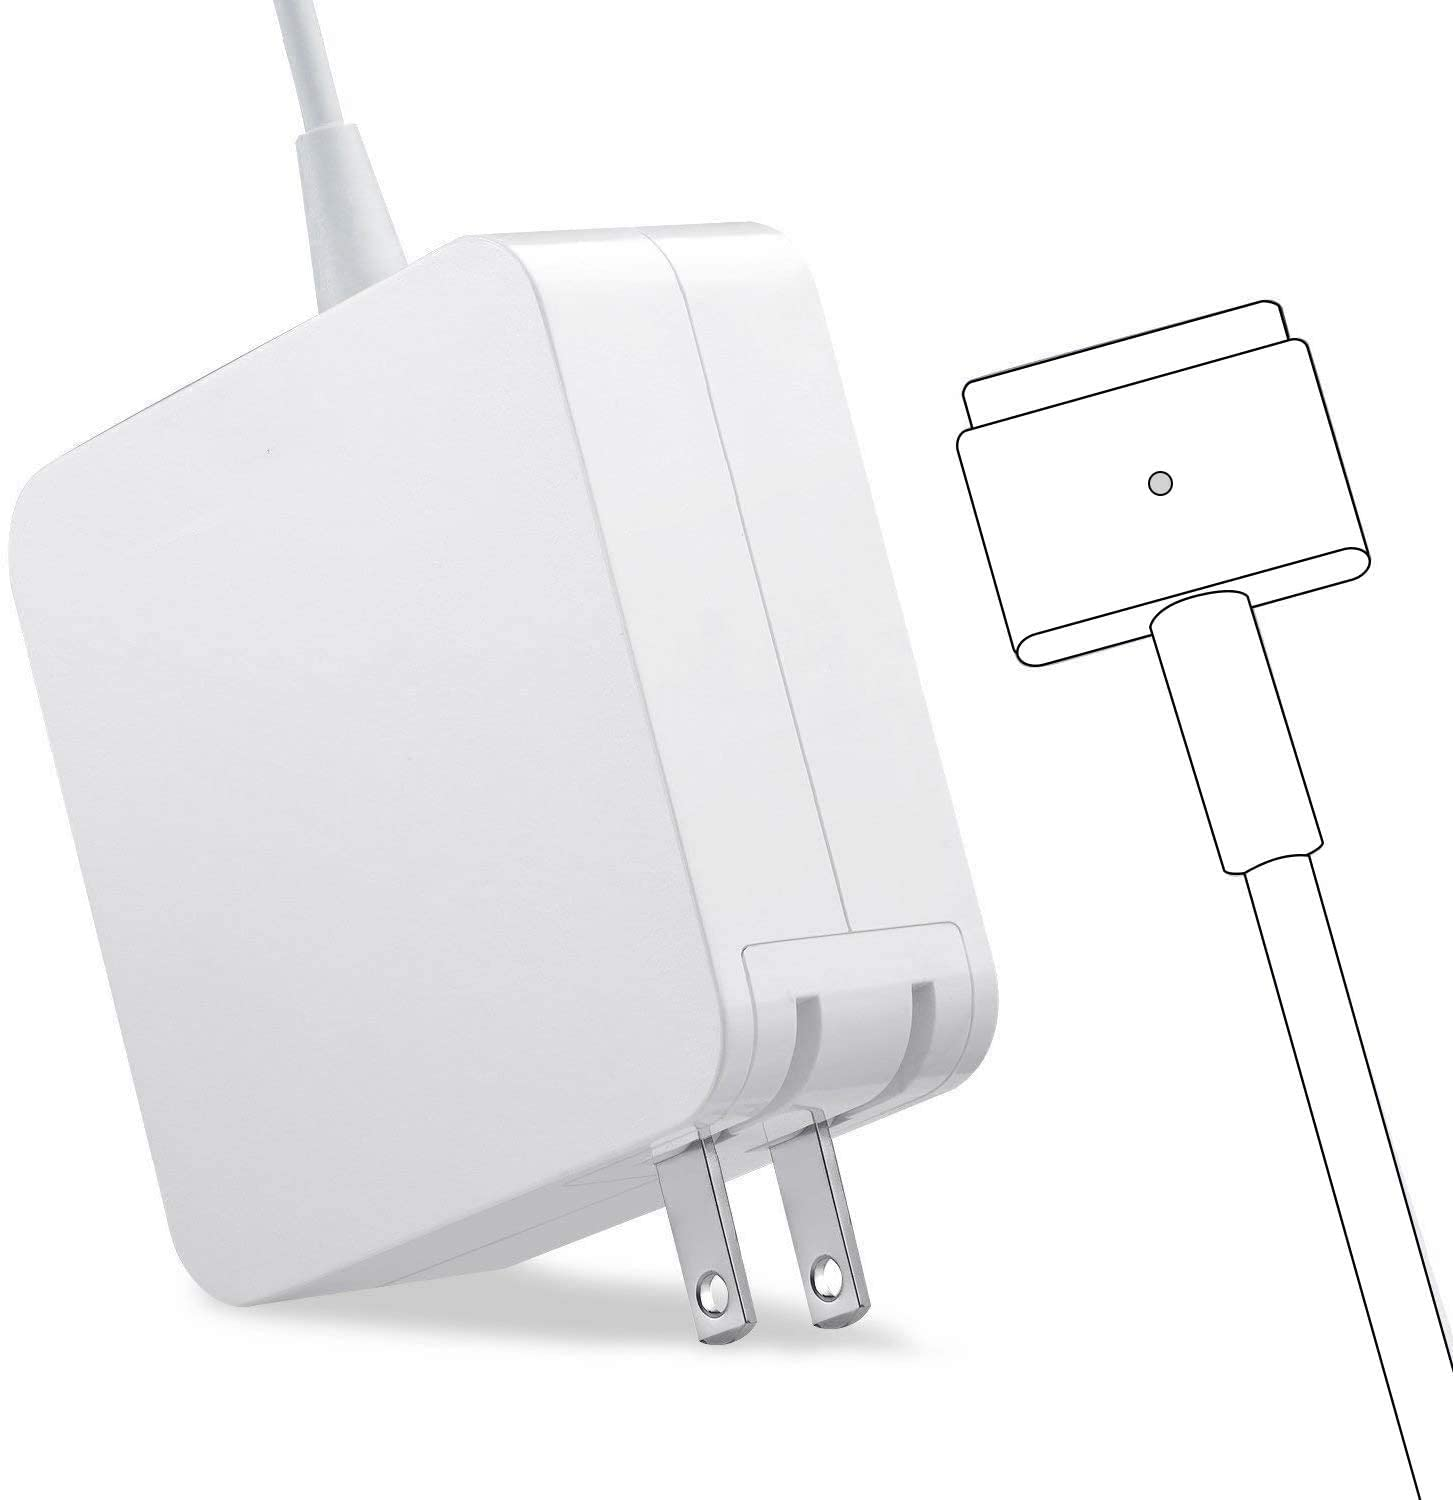 Mac Book Pro Charger, AC 85w Power Adapter T-Tip Adapter Charger Connector for Mac Book Pro 13/15/17 Inch(Made After Mid 2012)